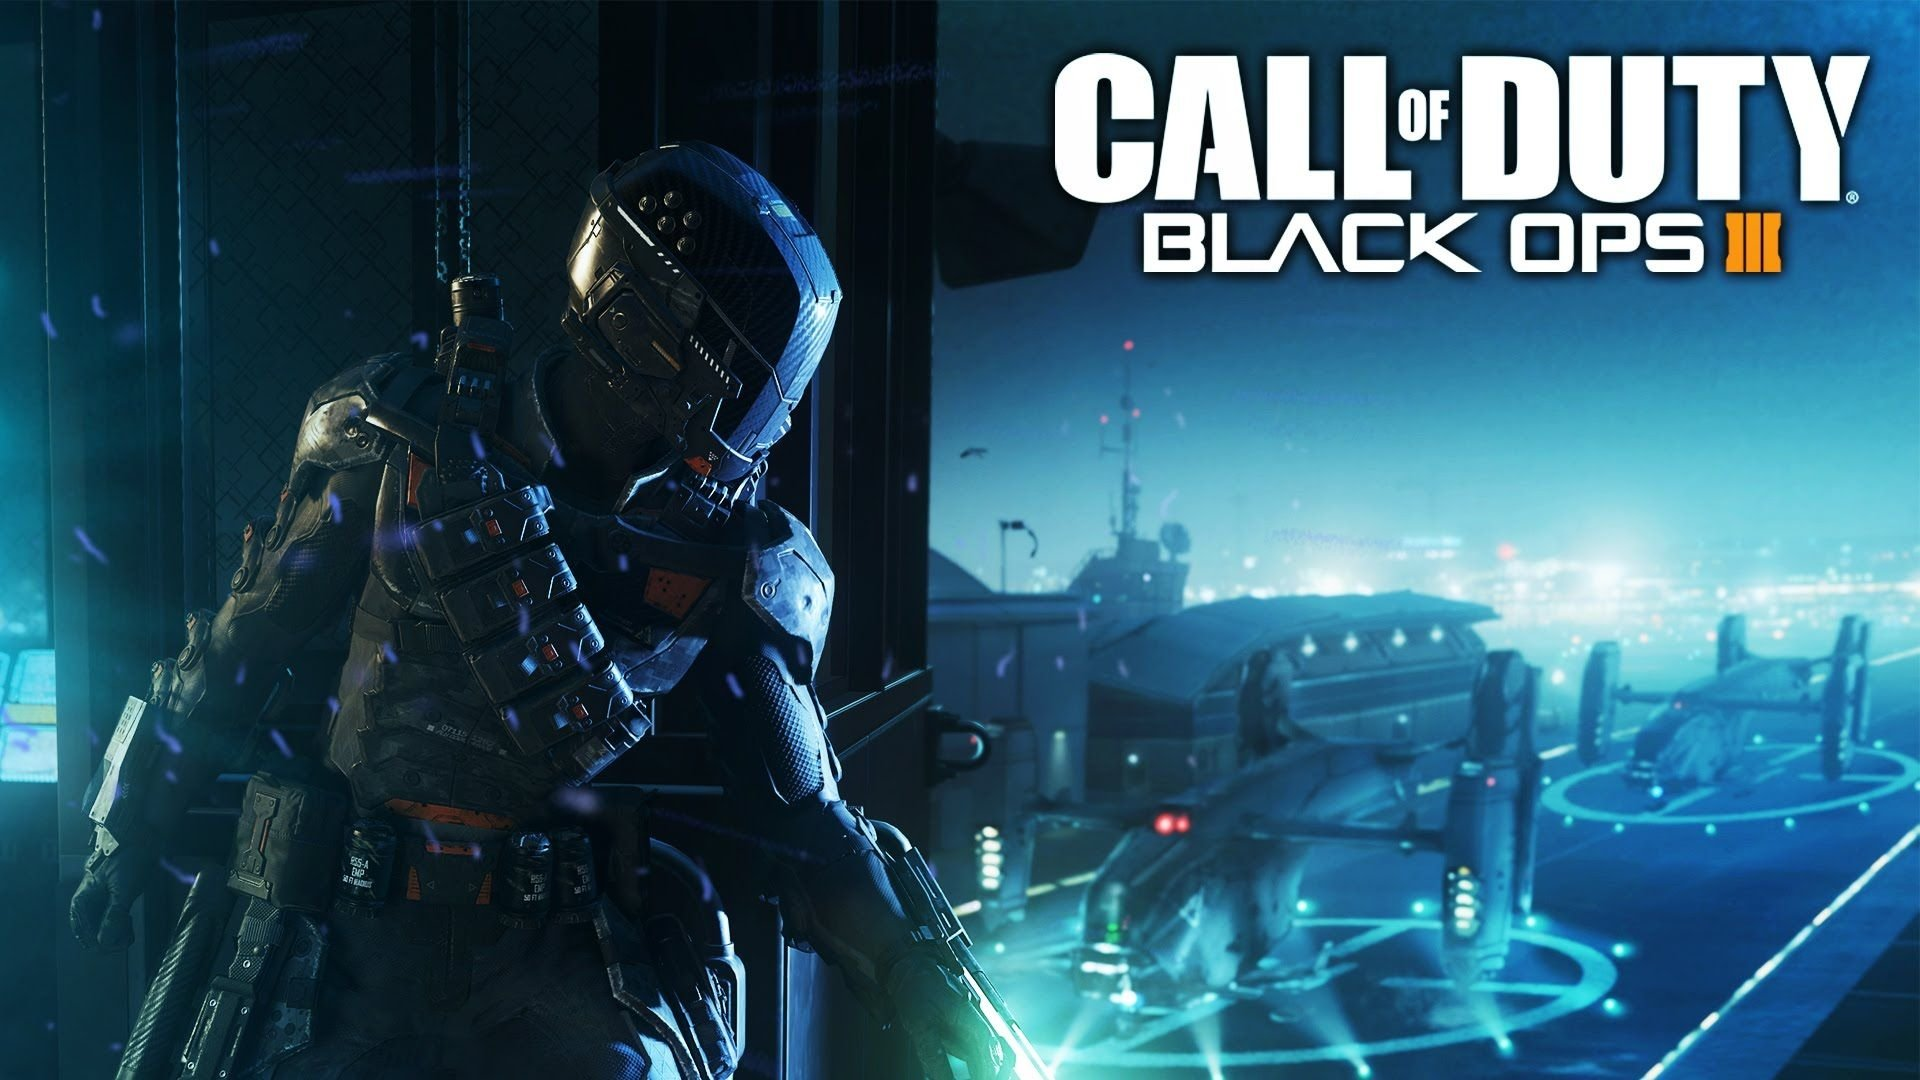 Call Of Duty Black Ops Iii Hd Wallpaper Background Image